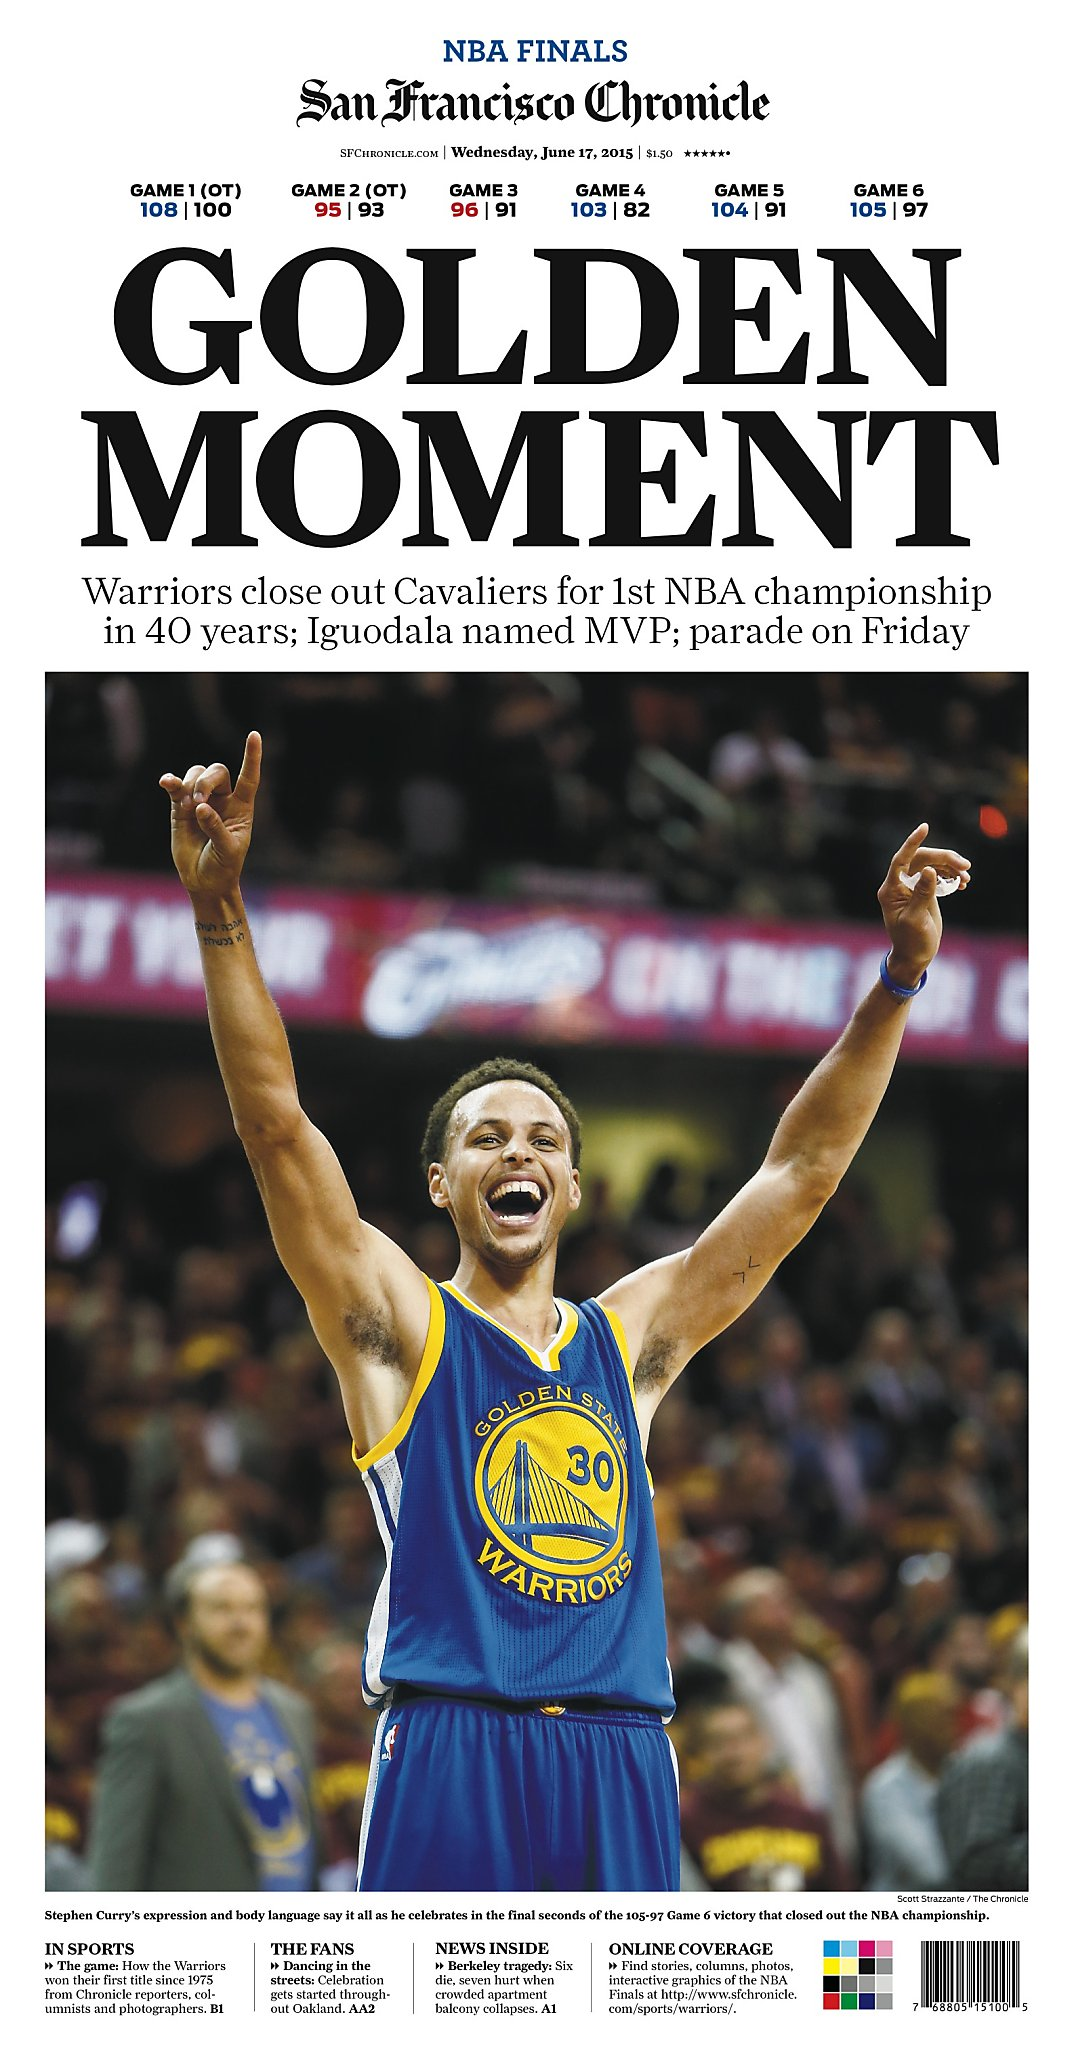 Chronicle Covers: A Look Back At The 2015 Warriors' Title